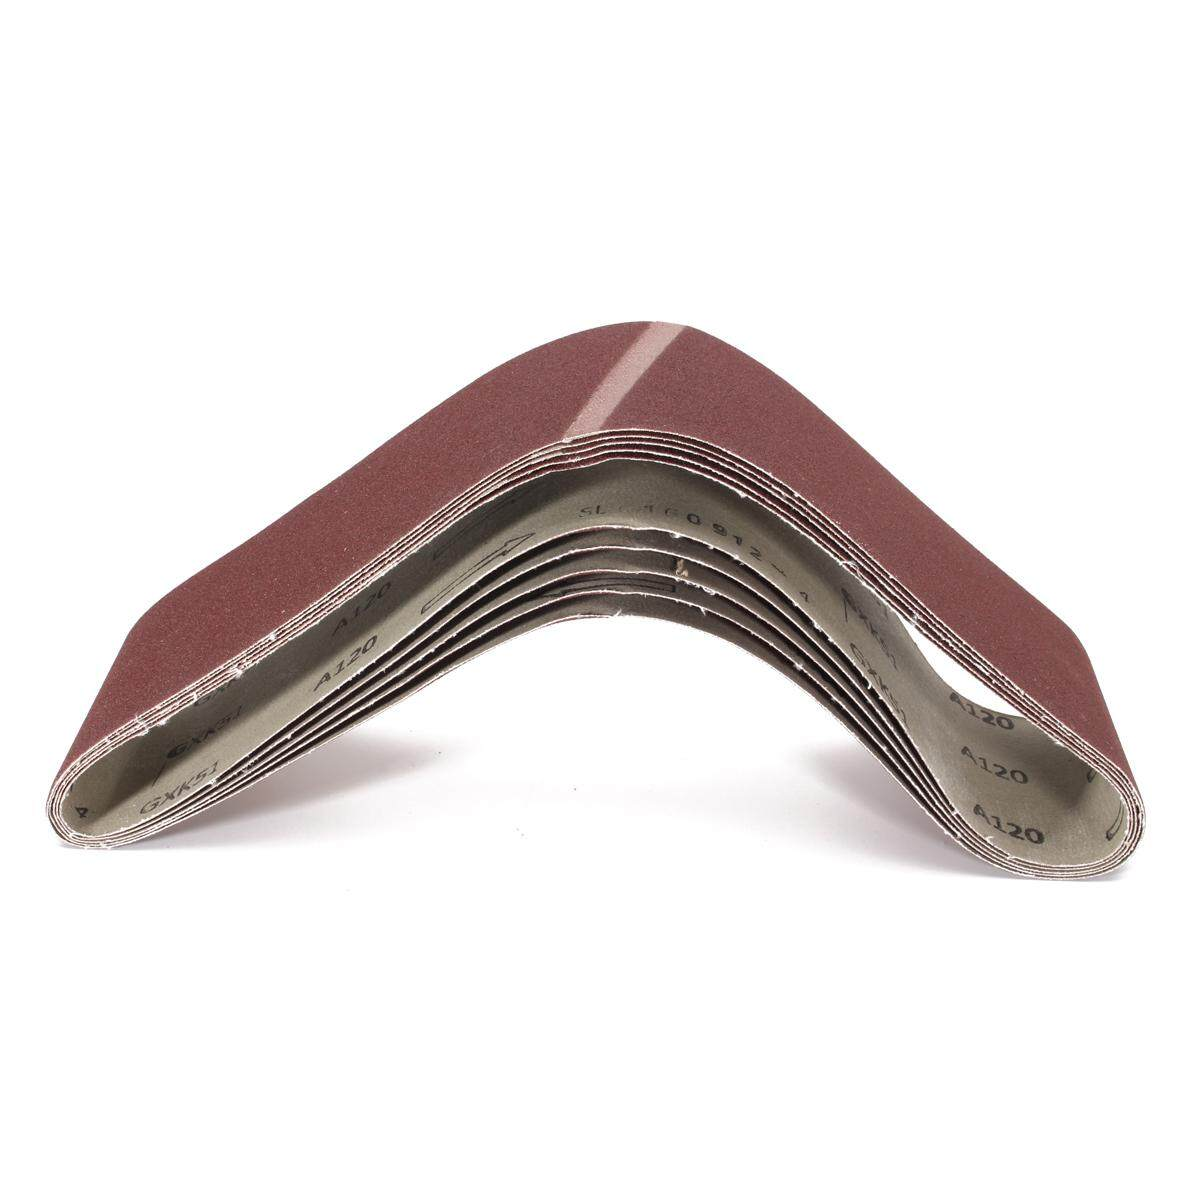 5pcs 4x36 120 Grit Sander Grinding Polishing Aluminum Oxide Sanding Belts By Ferry.